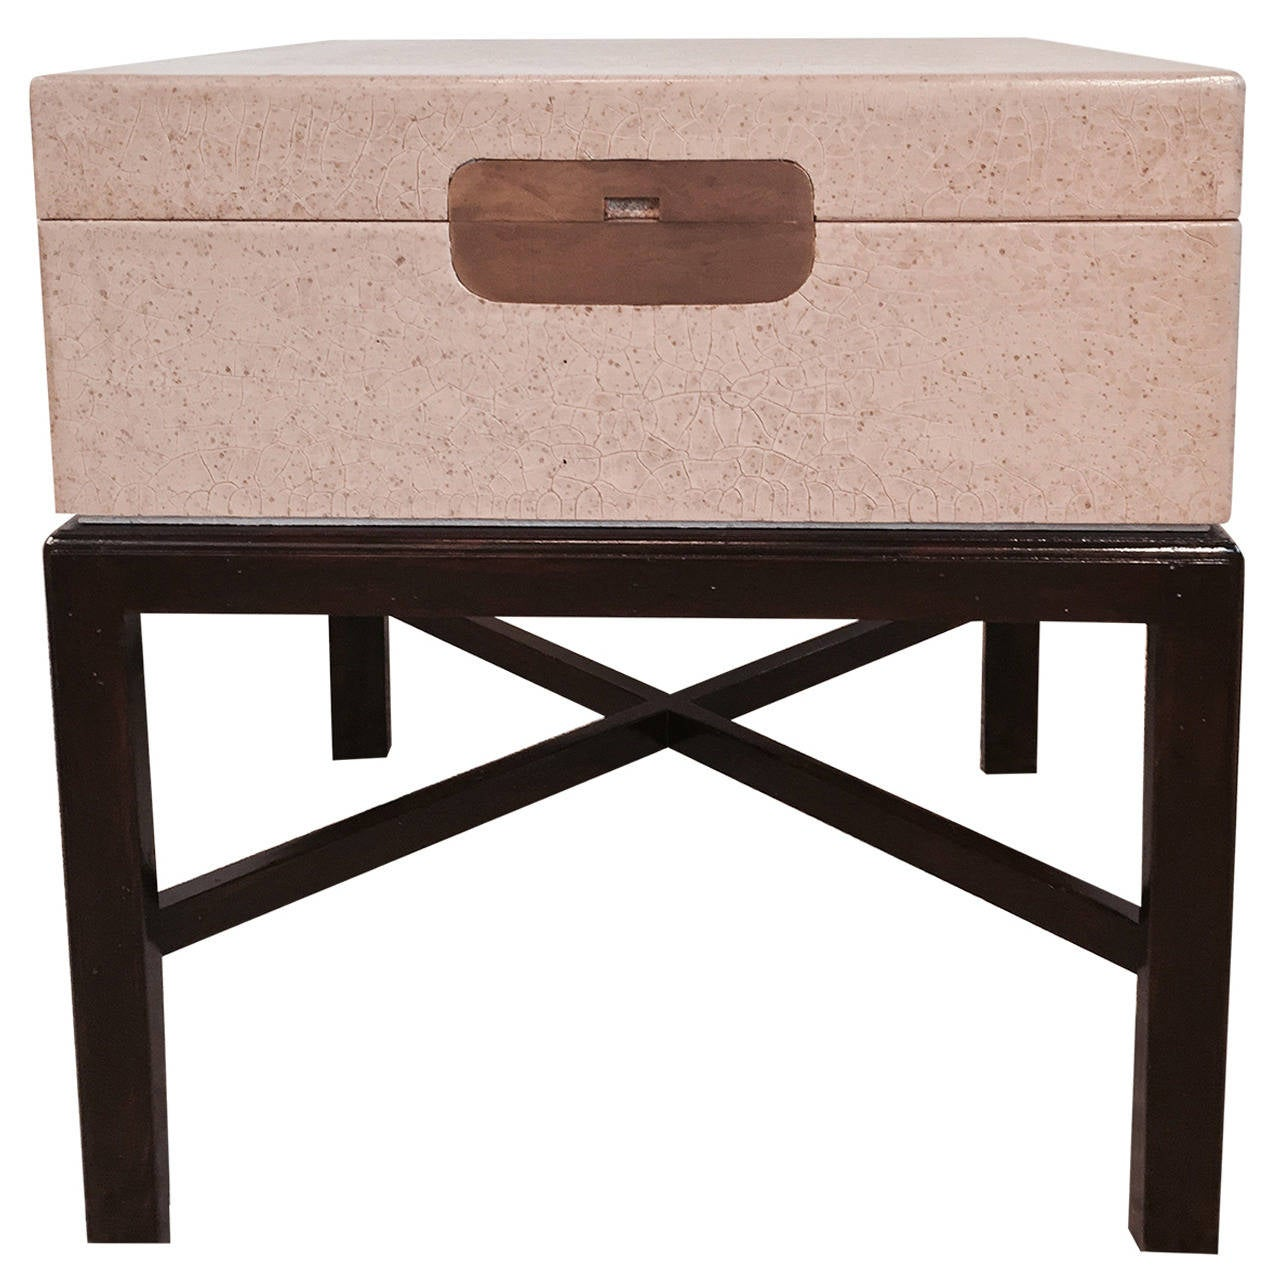 Marge Carson Dining Tables Marge Carson Craquelure Lacquer Box Table For Sale At 1stdibs